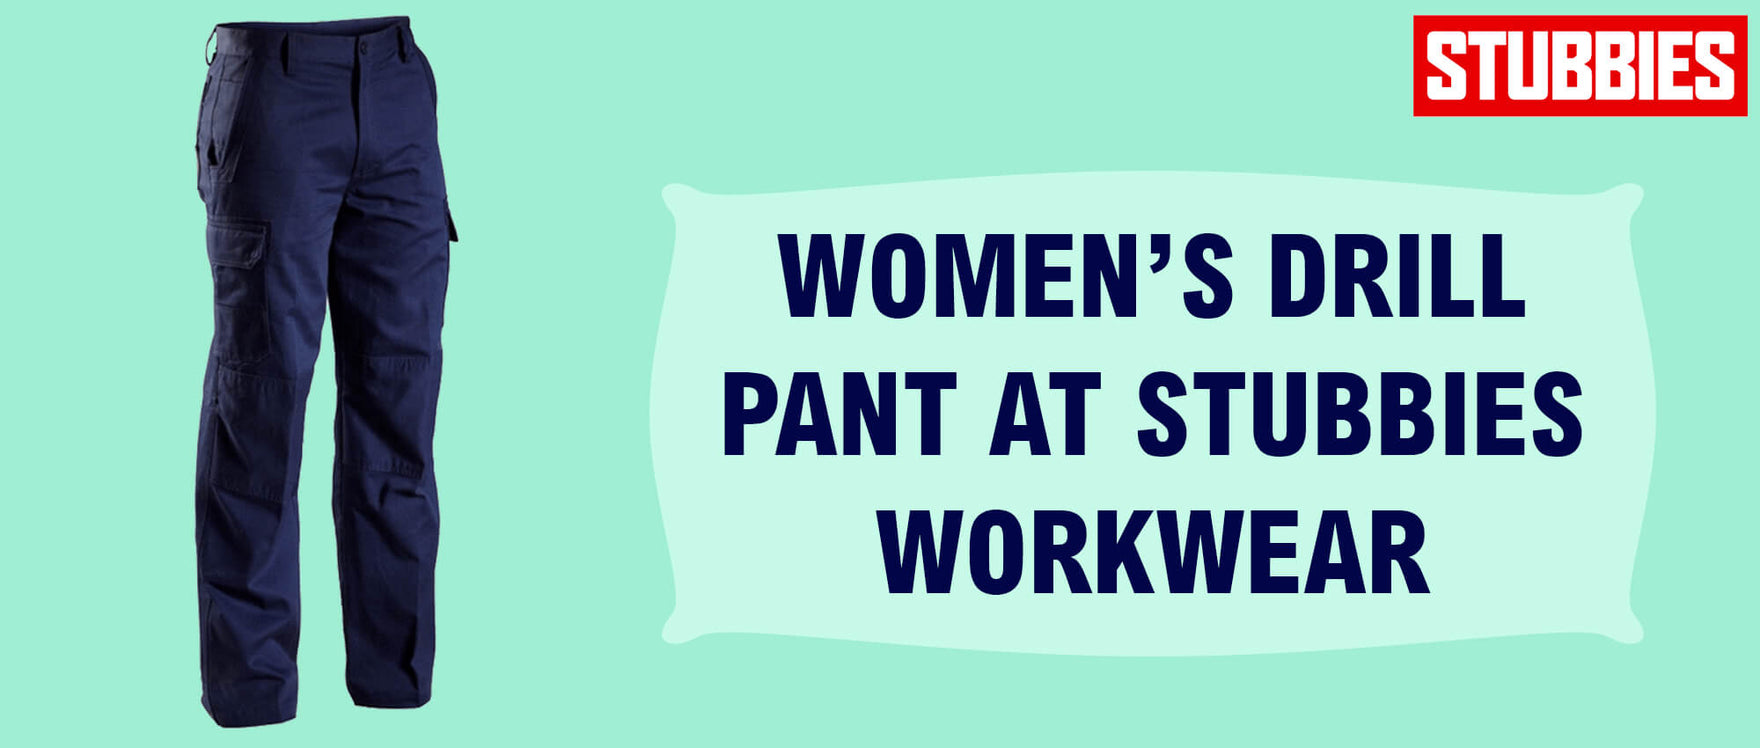 Women's Drill Pant at Stubbies Workwear